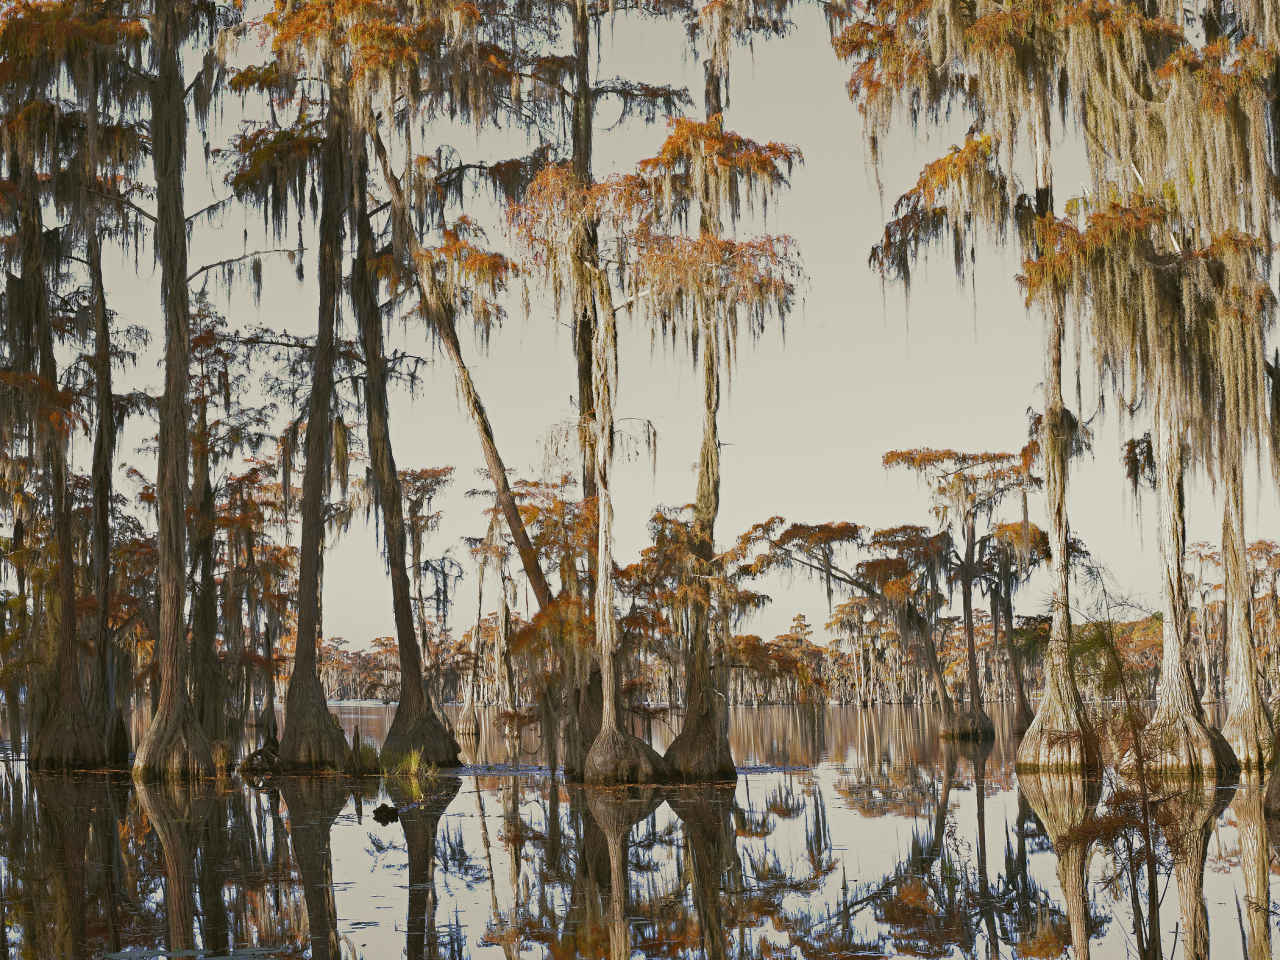 Pierre Gonnord, Swamp IV - The South Edition